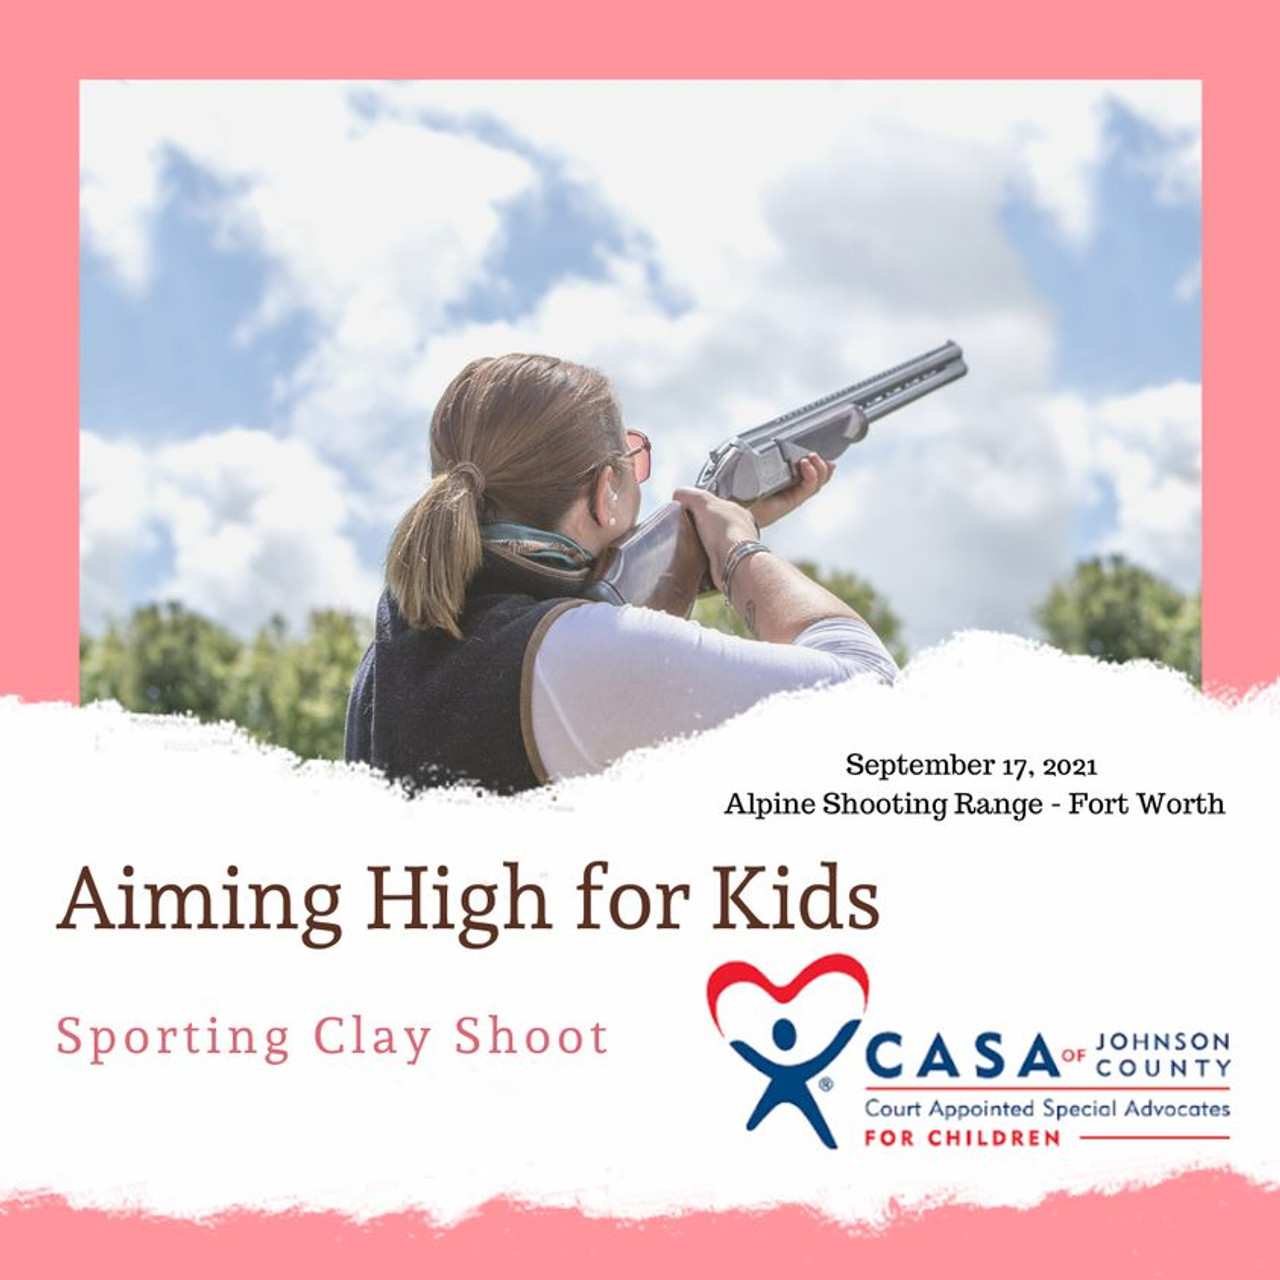 """CASA of Johnson County """" Aiming High For Kids """" Clay Tournament - September 17, 2021"""